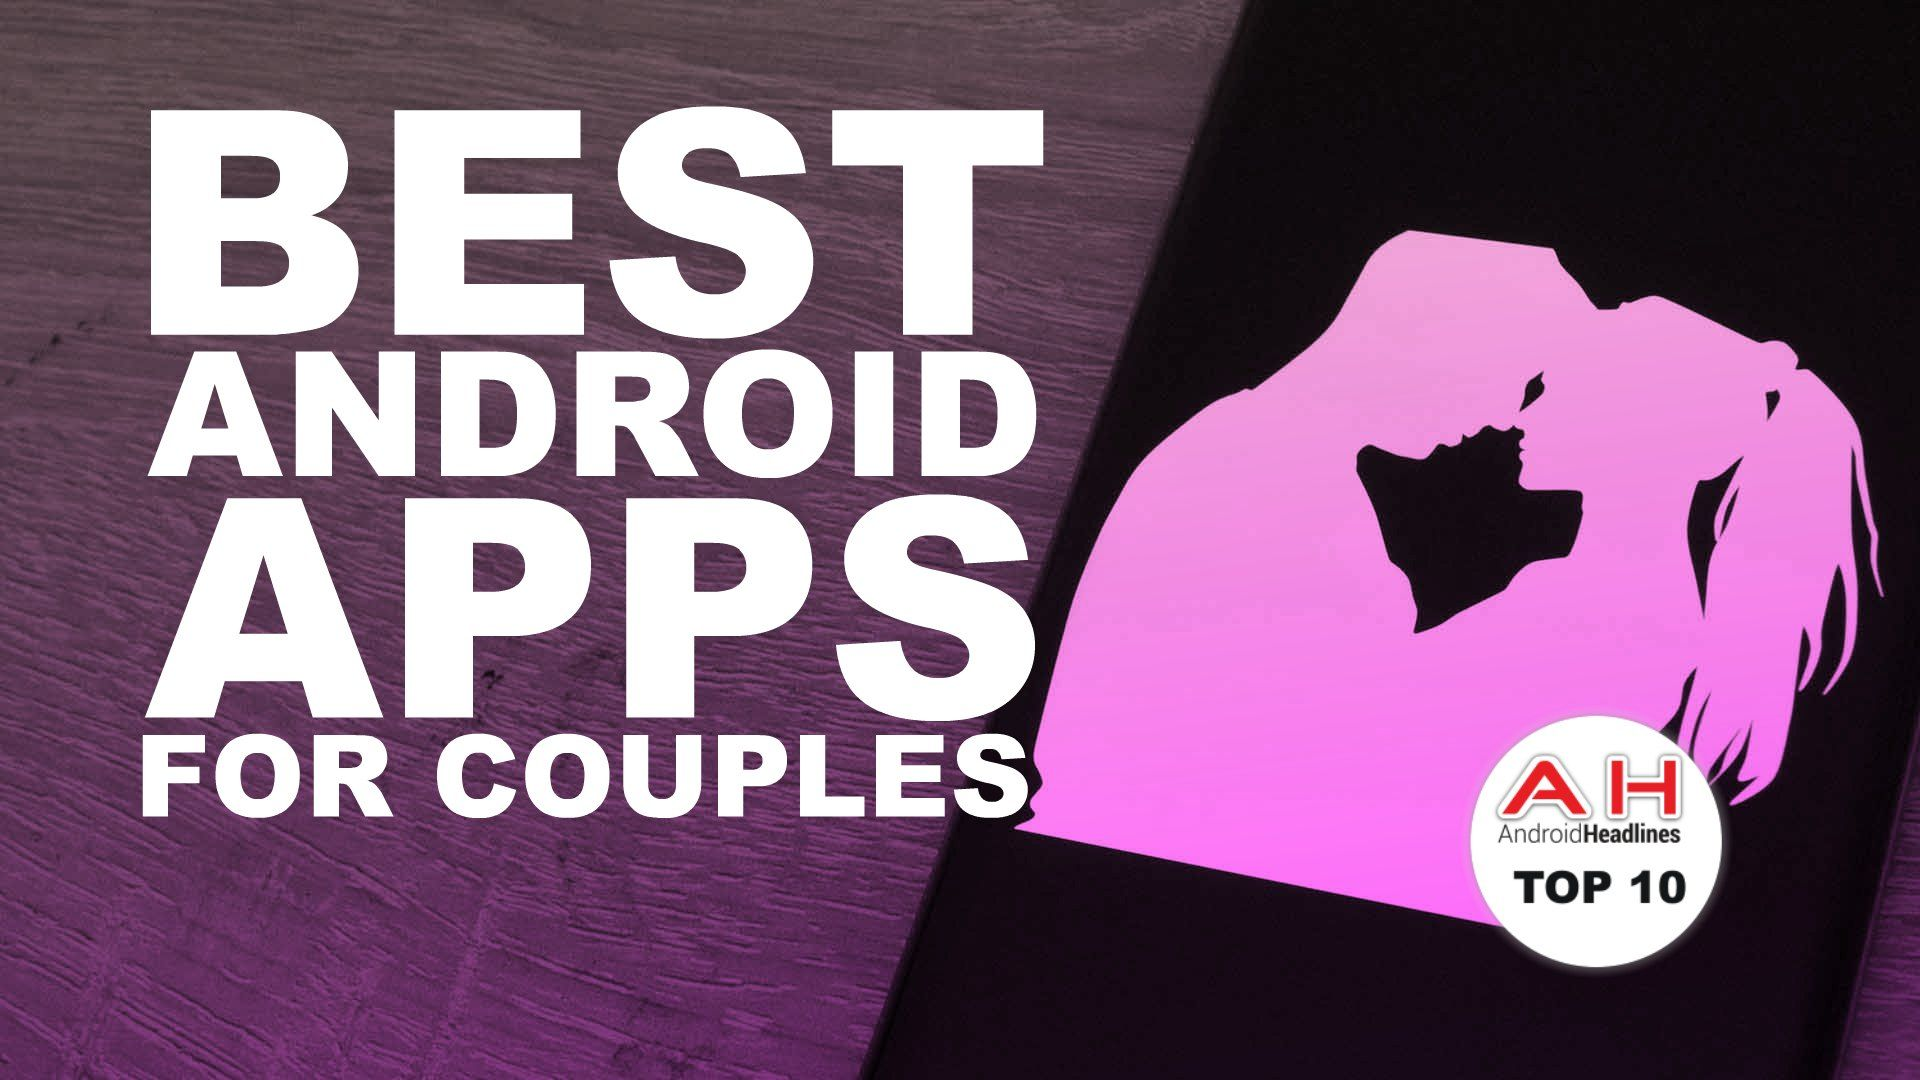 Top apps for couples